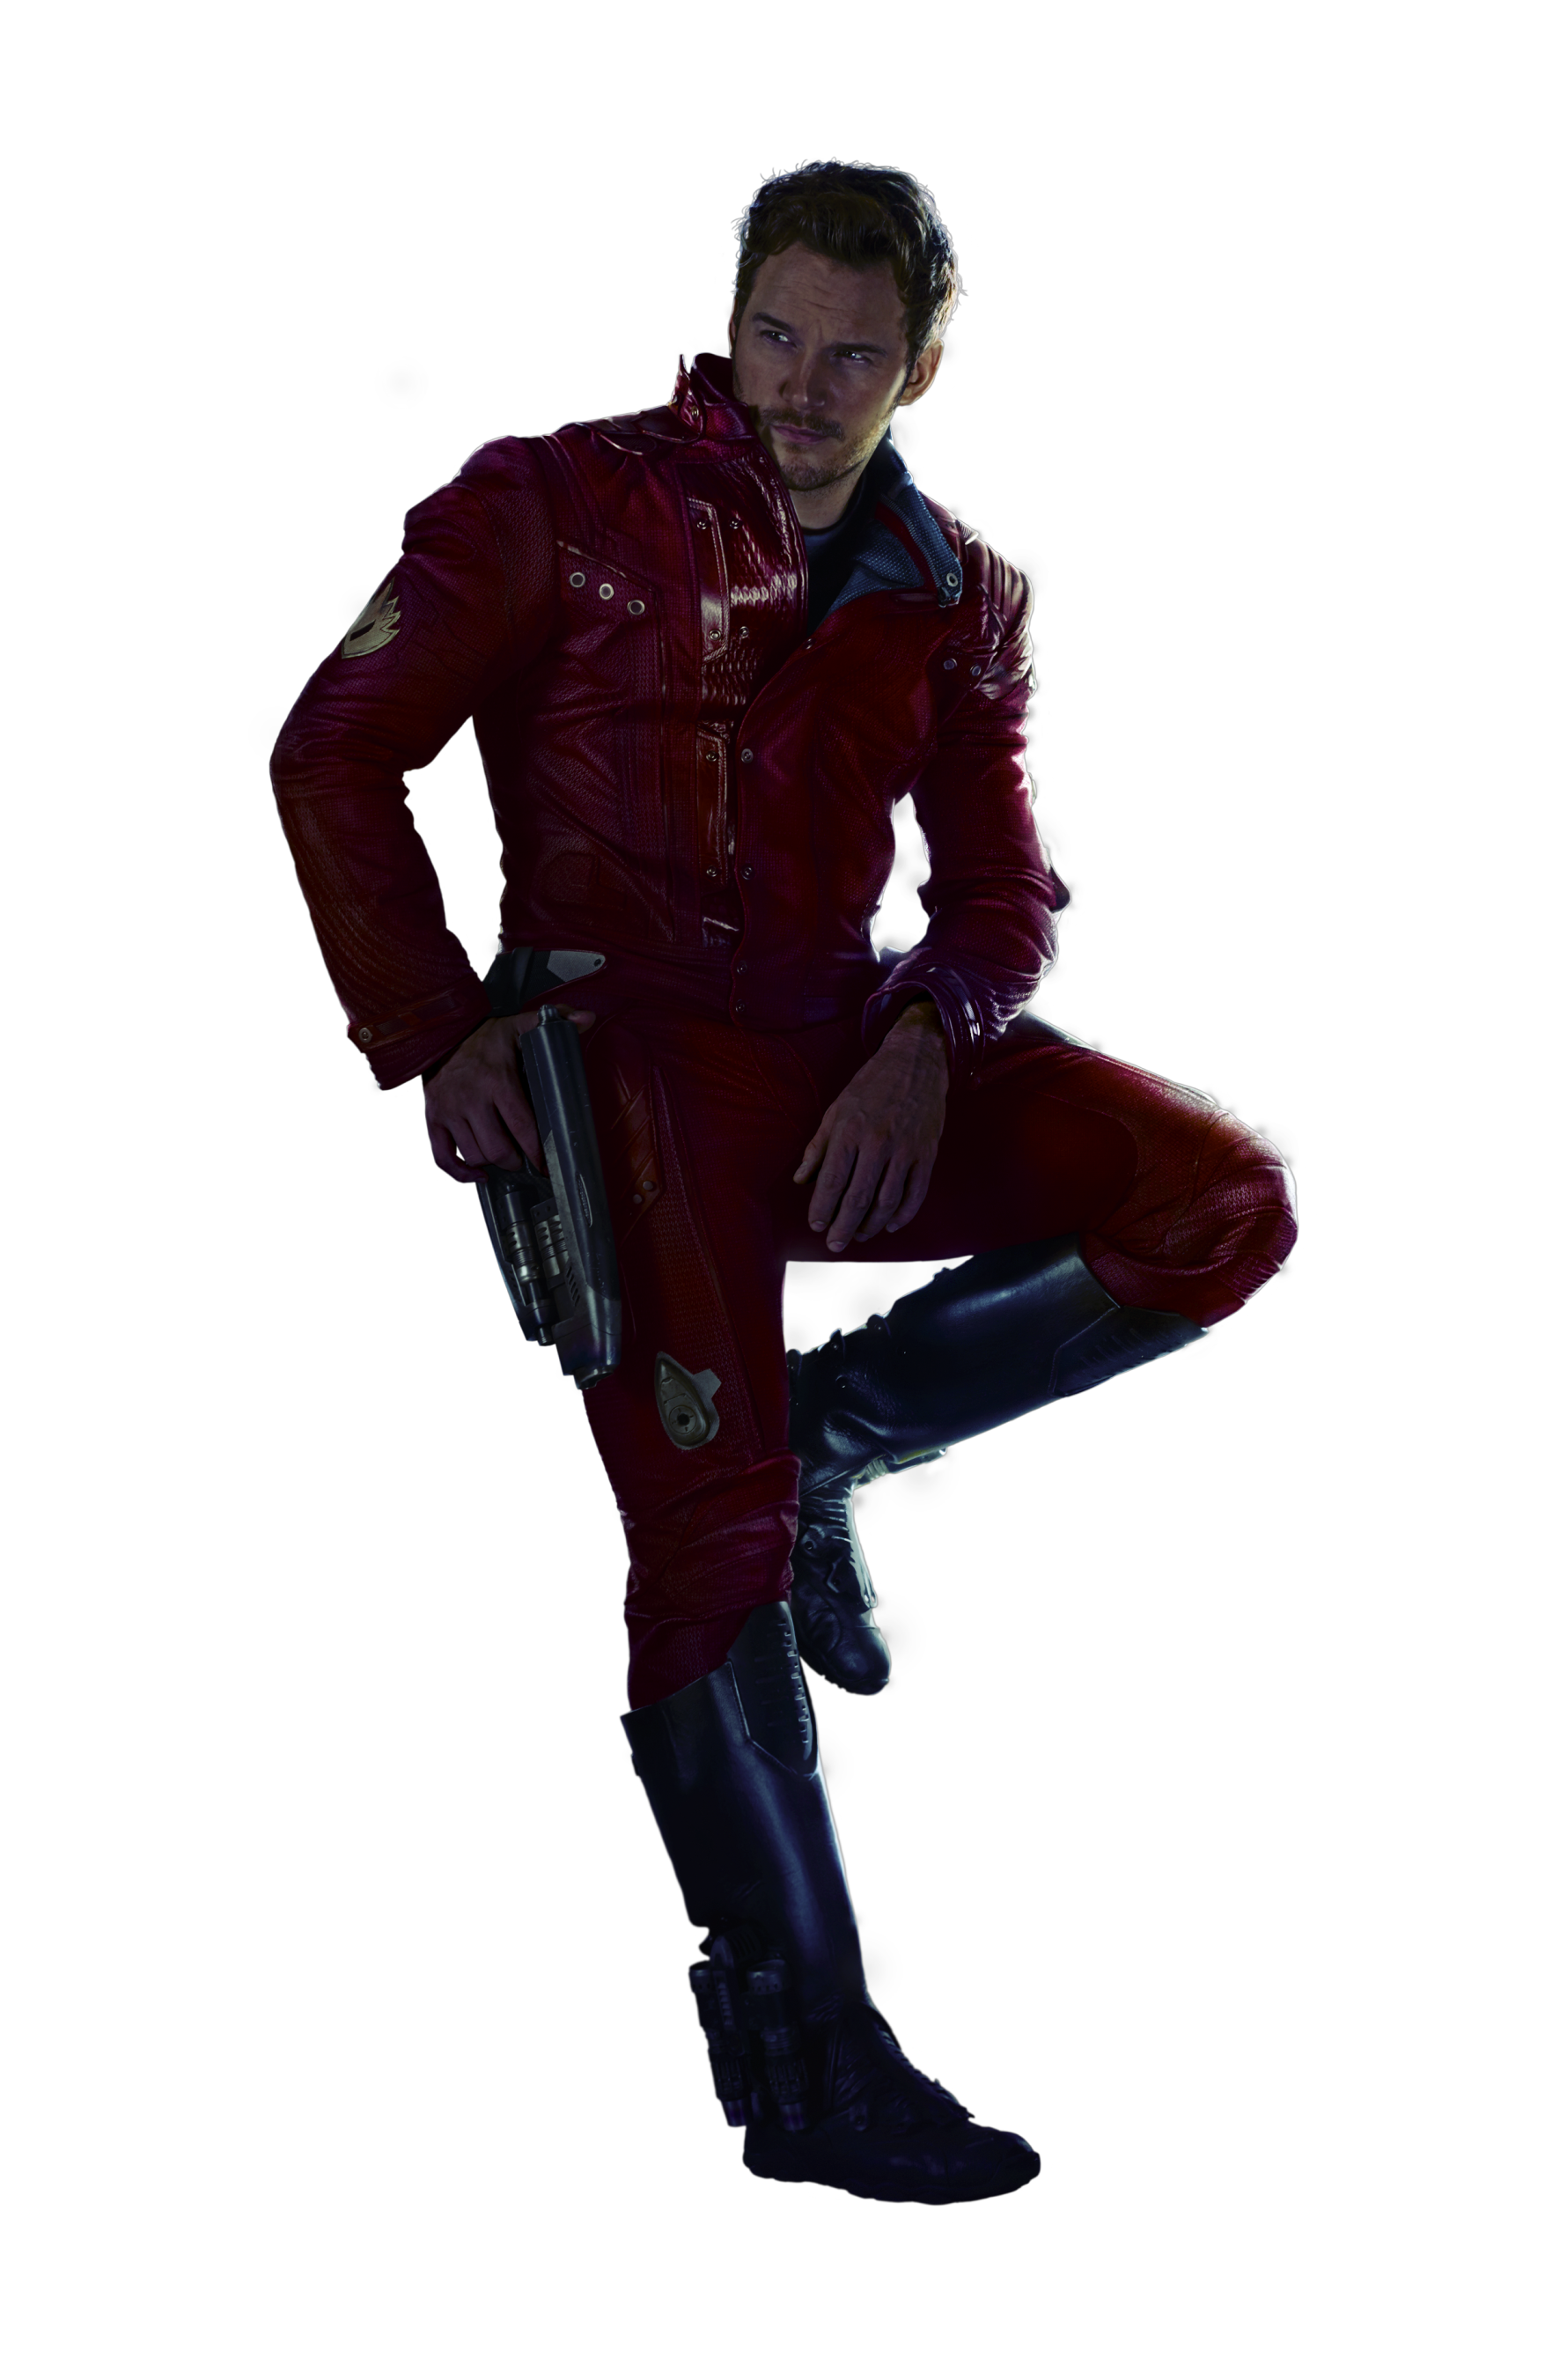 Image - Starlord.png | Marvel Movies | FANDOM powered by Wikia